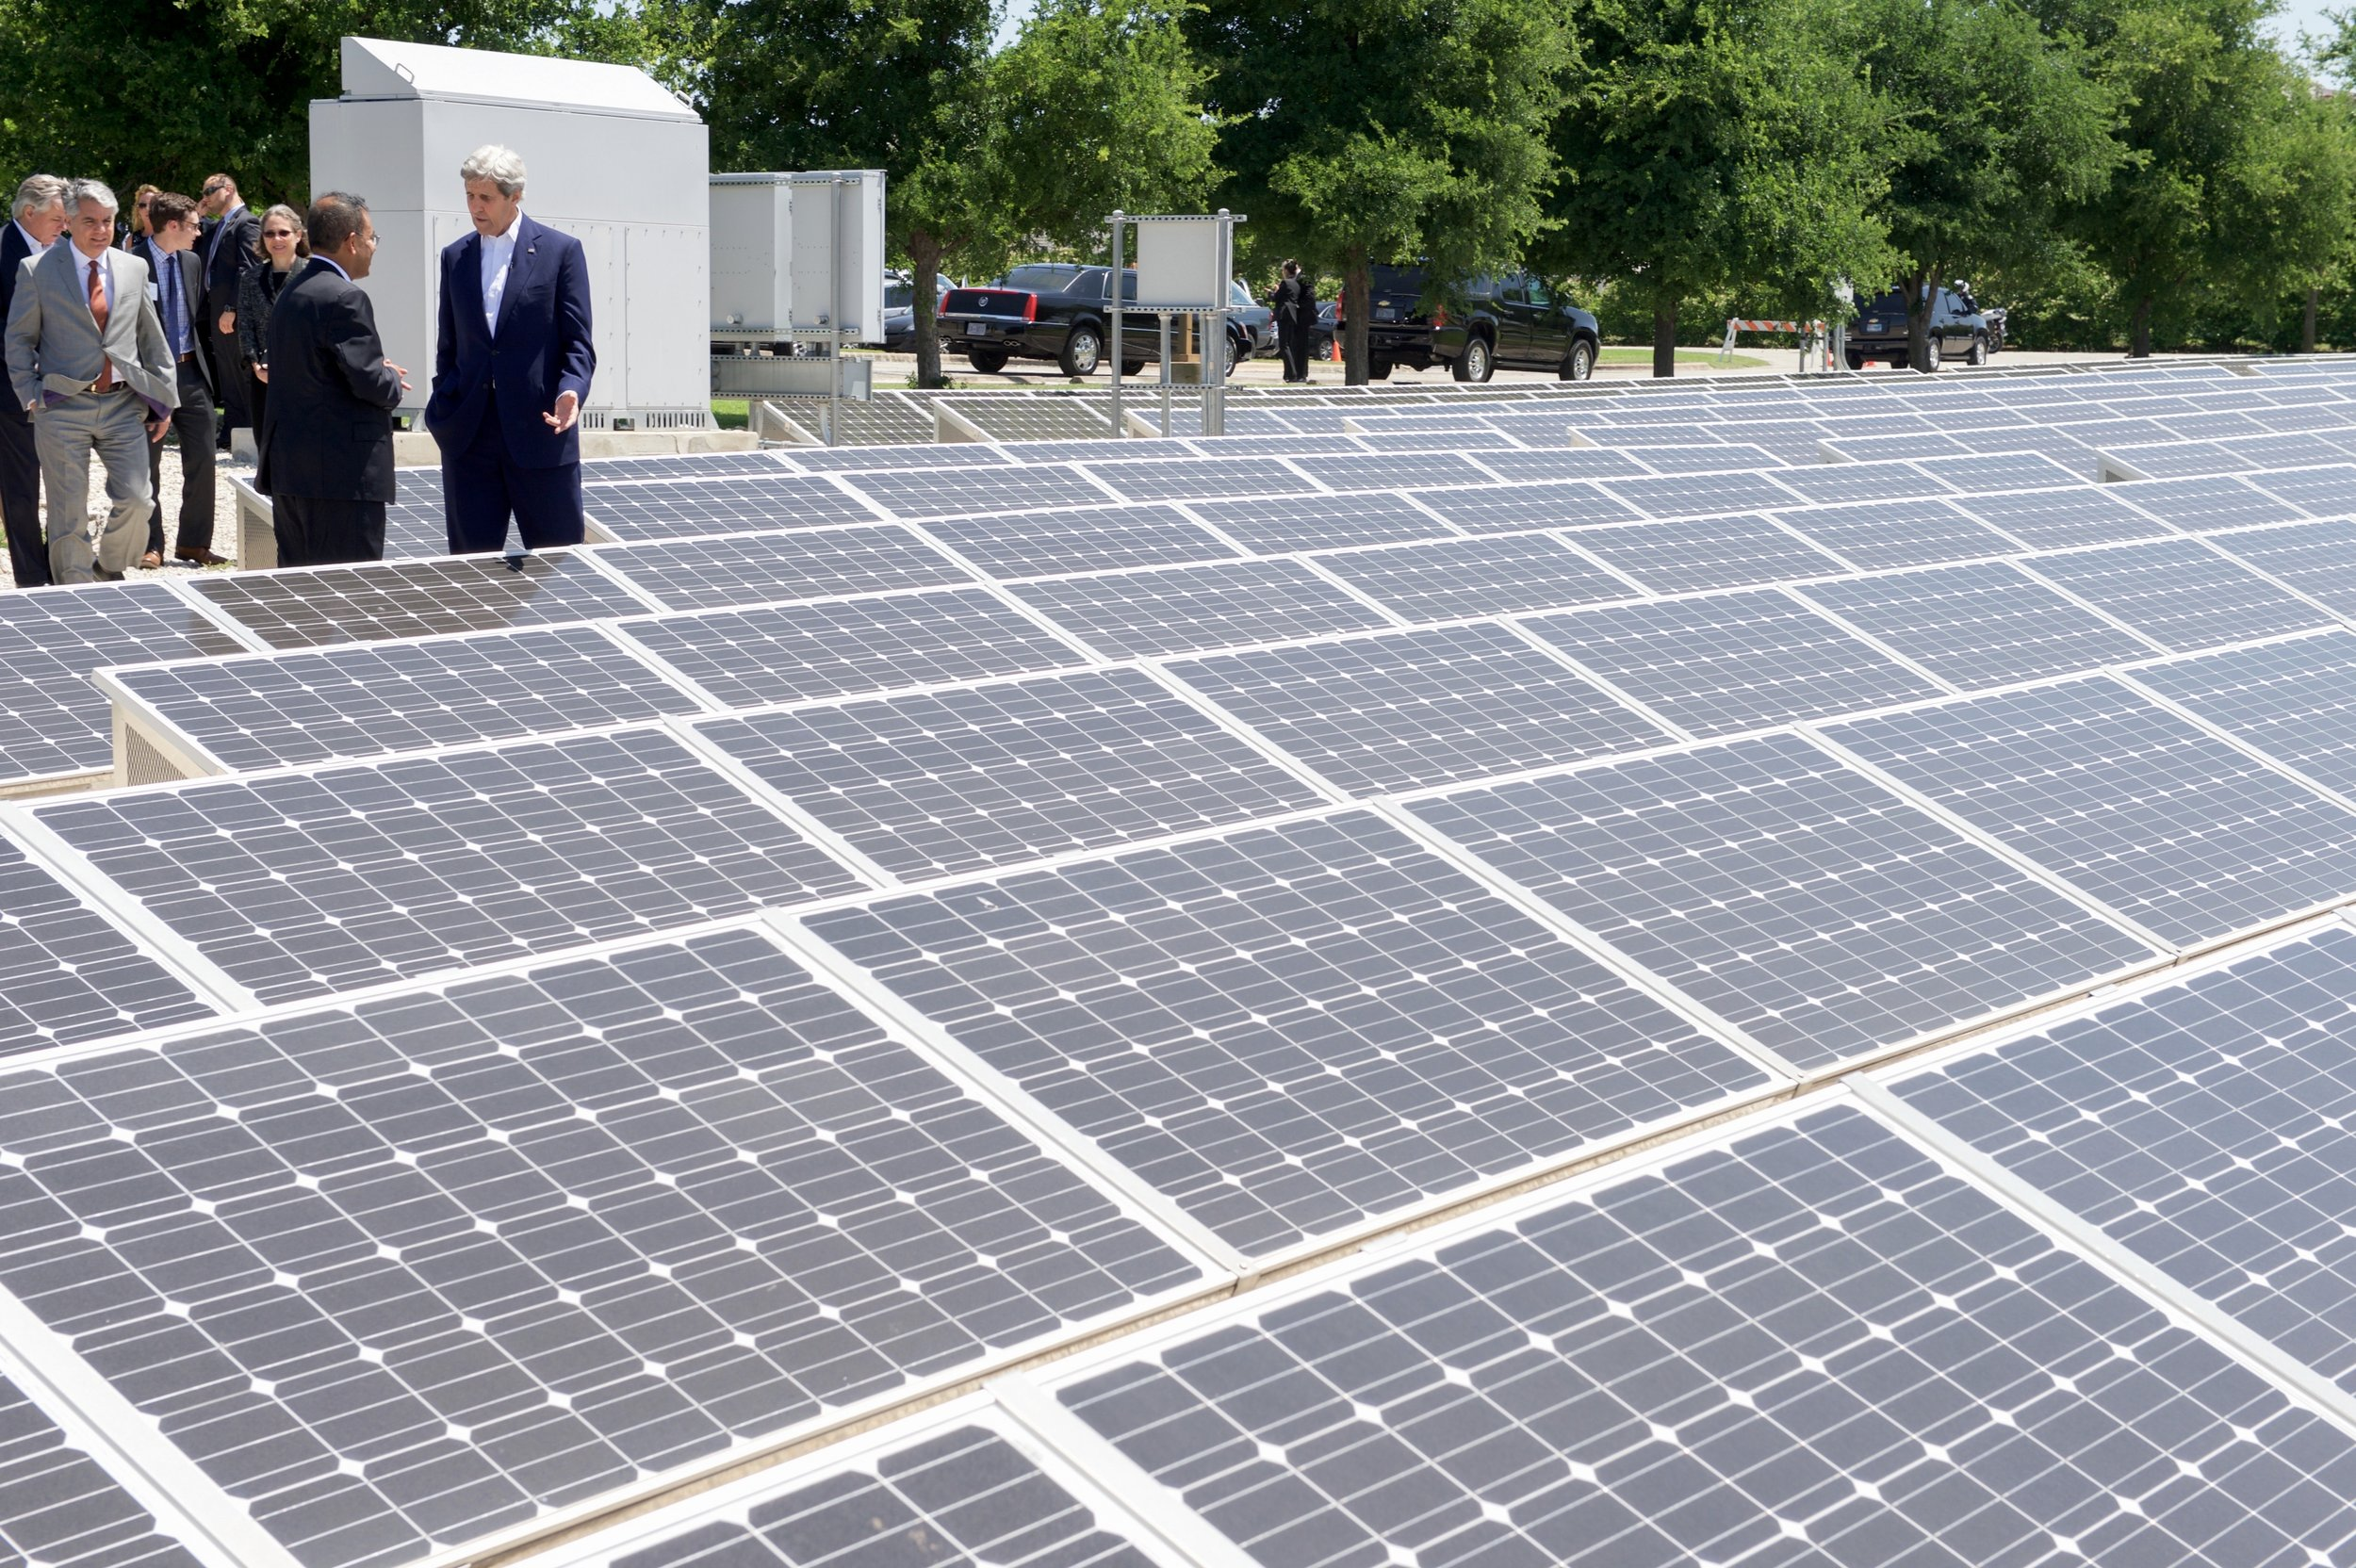 Secretary Kerry touring a solar field in Austin, Texas, during a domestic stop to highlight his work at the State Department.